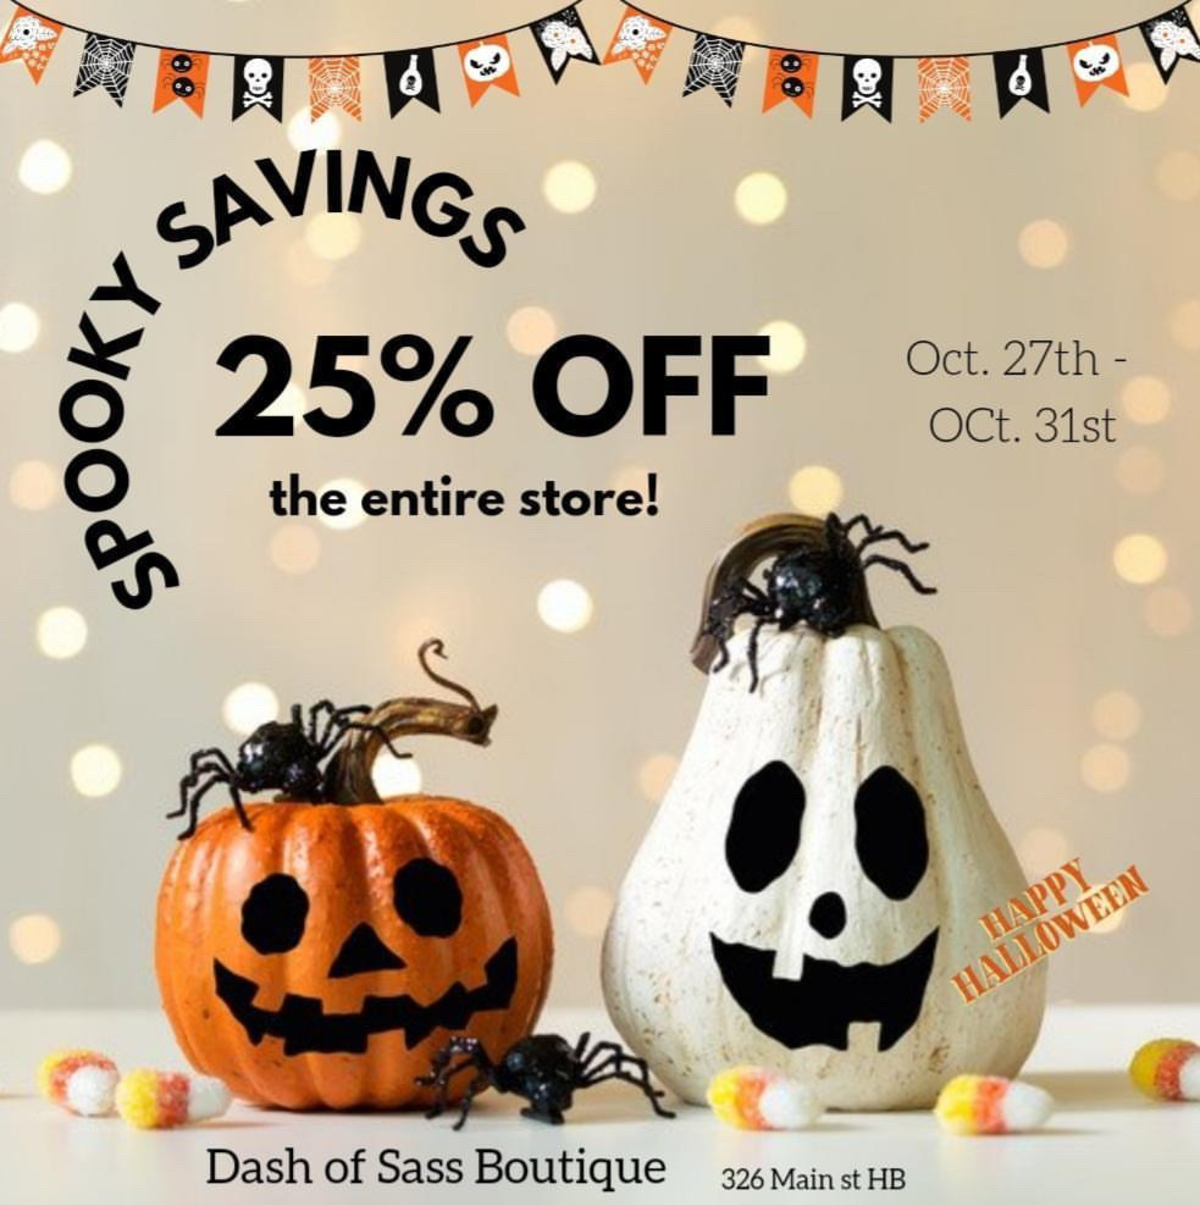 October 27 through October 31 get 25% off at Dash of Sass Boutique in Huntington Beach, CA